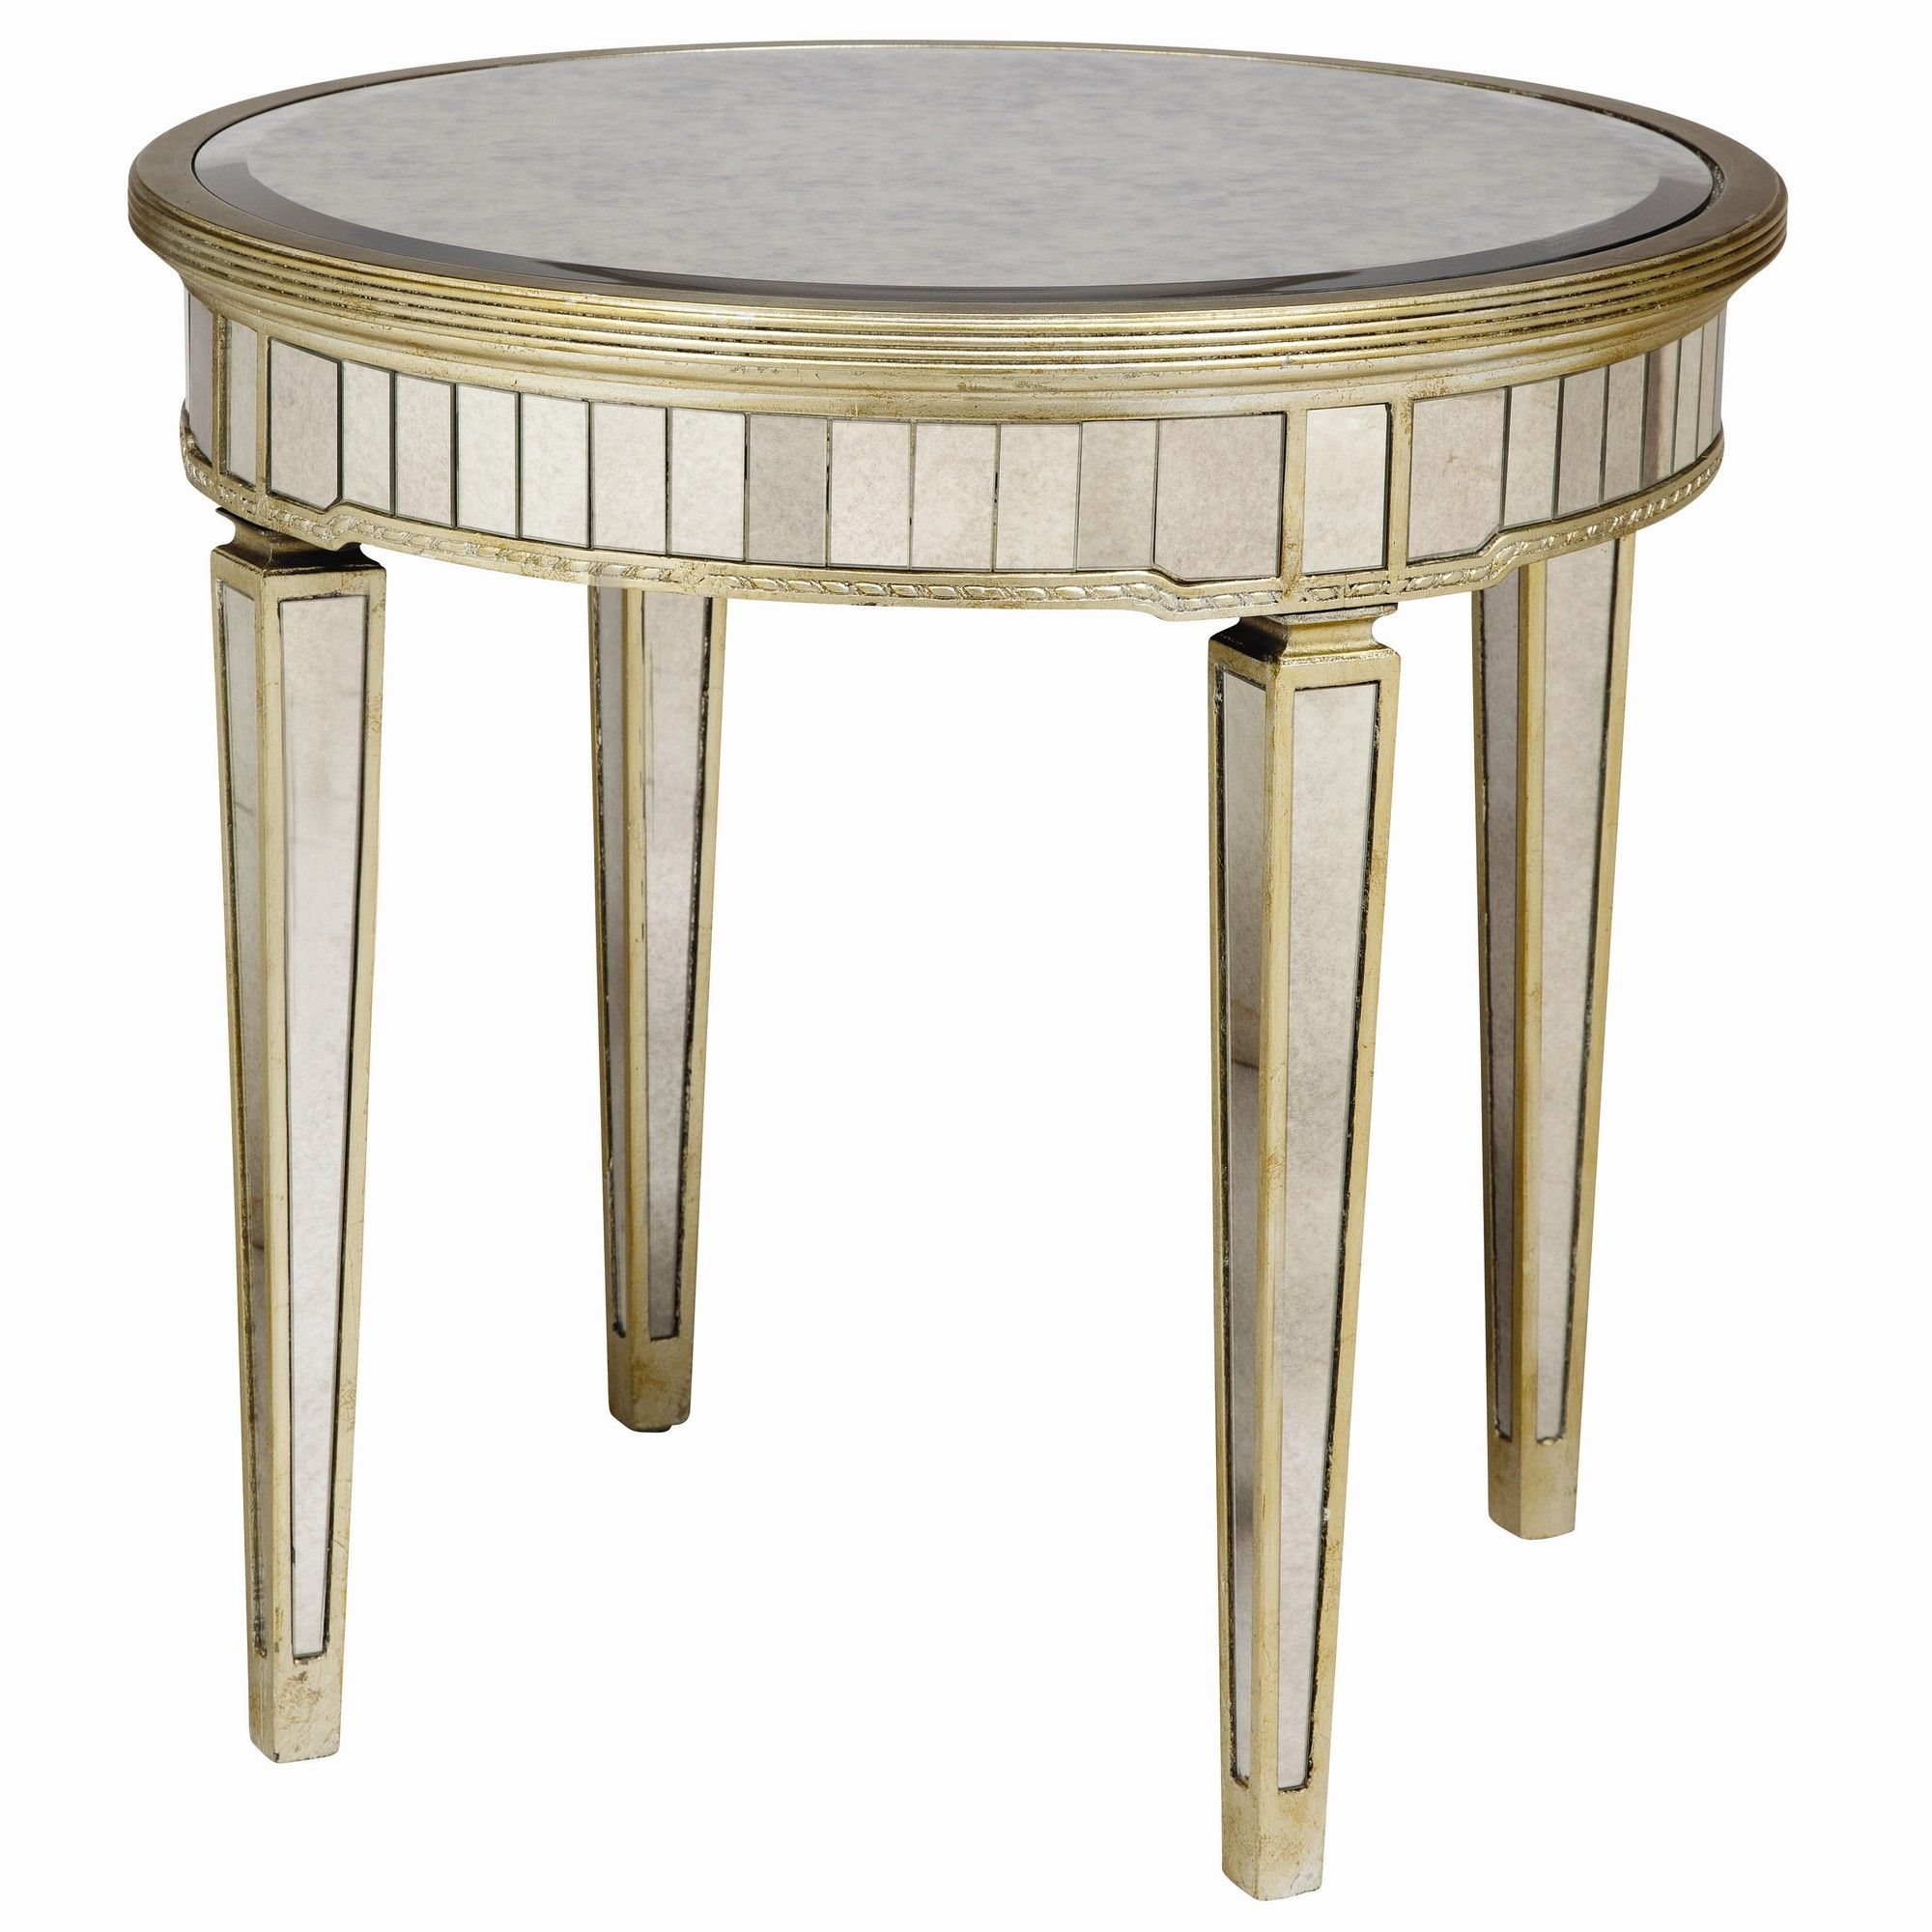 Borghese Mirrored Library Table Wayfair 866 boys Pinterest